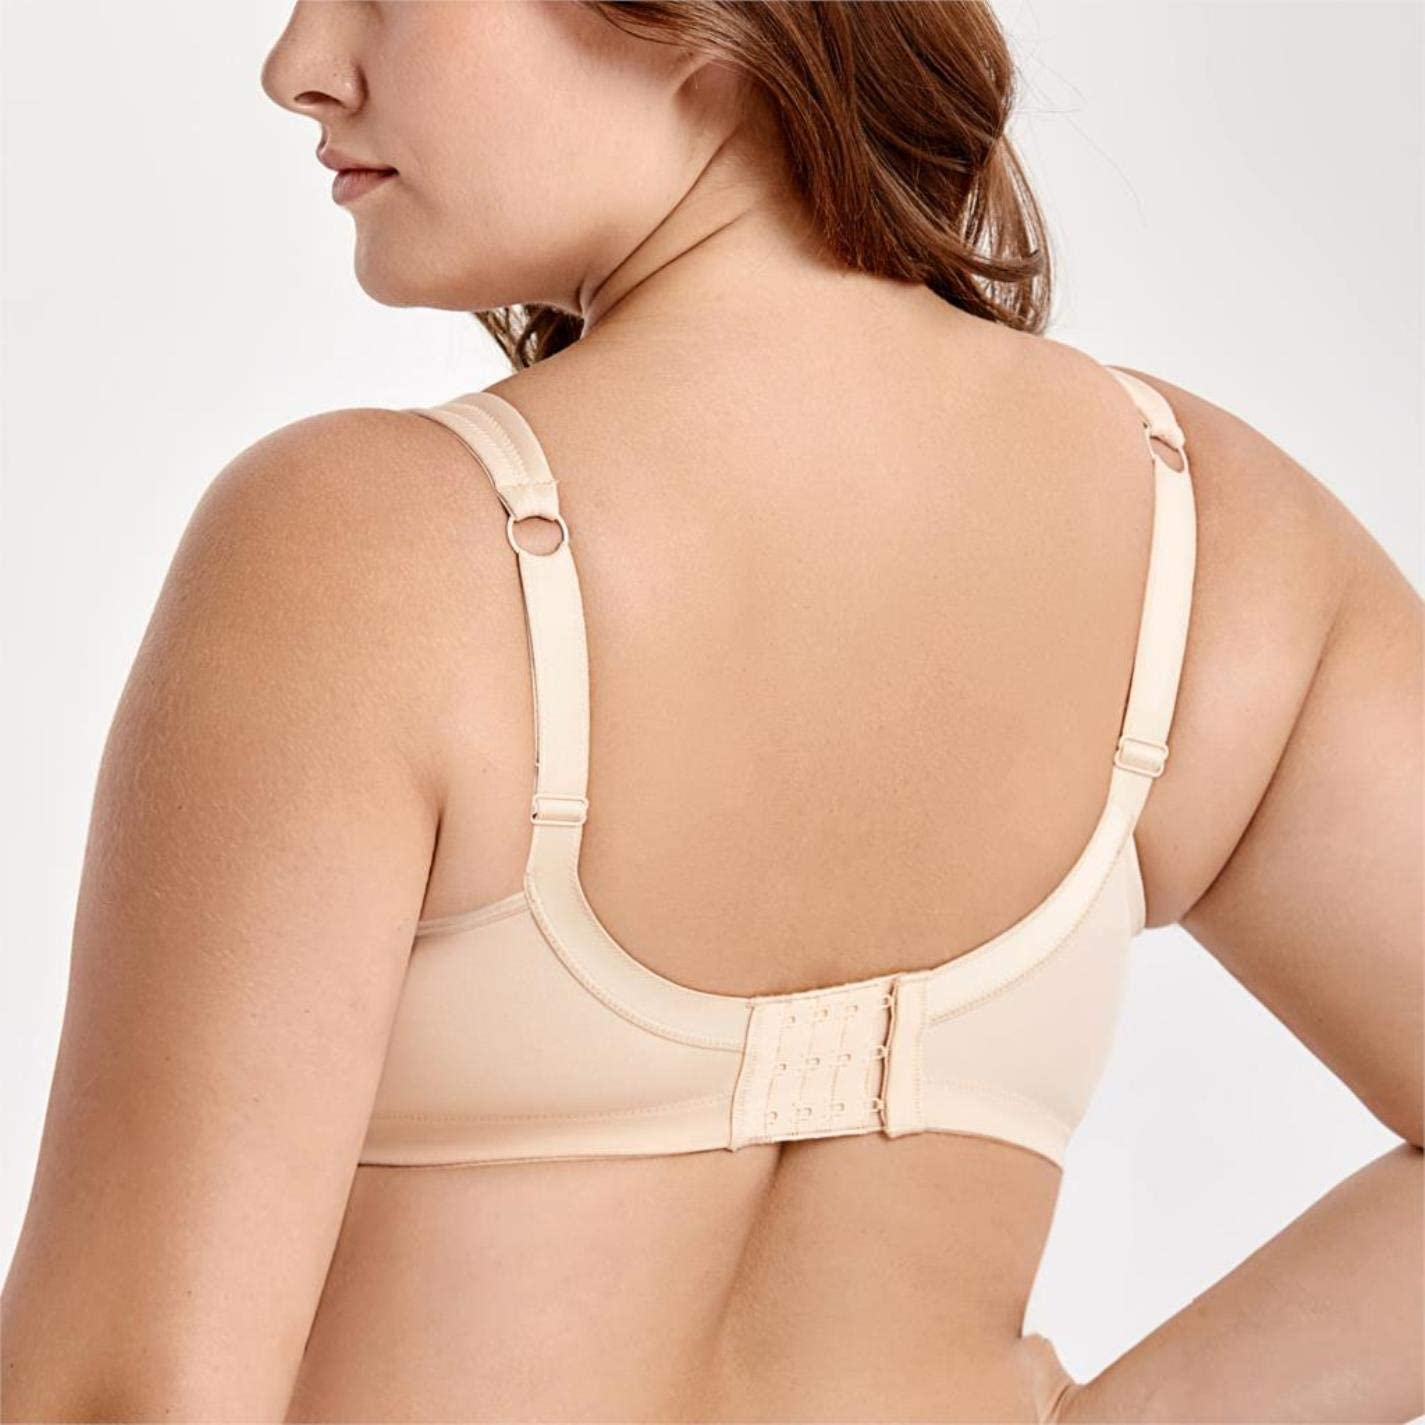 Womens Non-Padded Wire Free Comfort Lift Full Coverage Support Bra